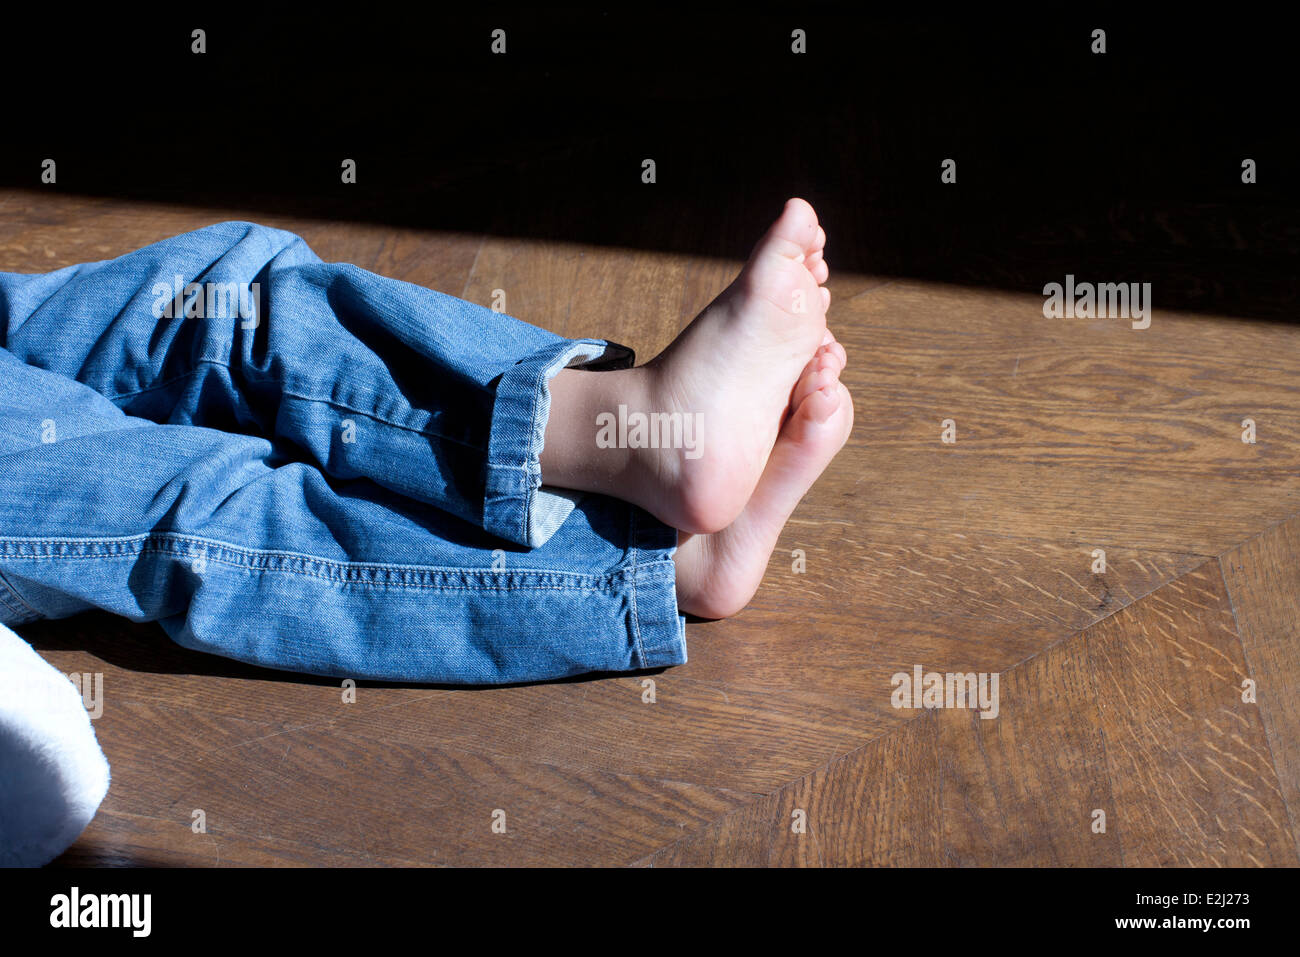 Barefoot child sitting on floor, low section - Stock Image